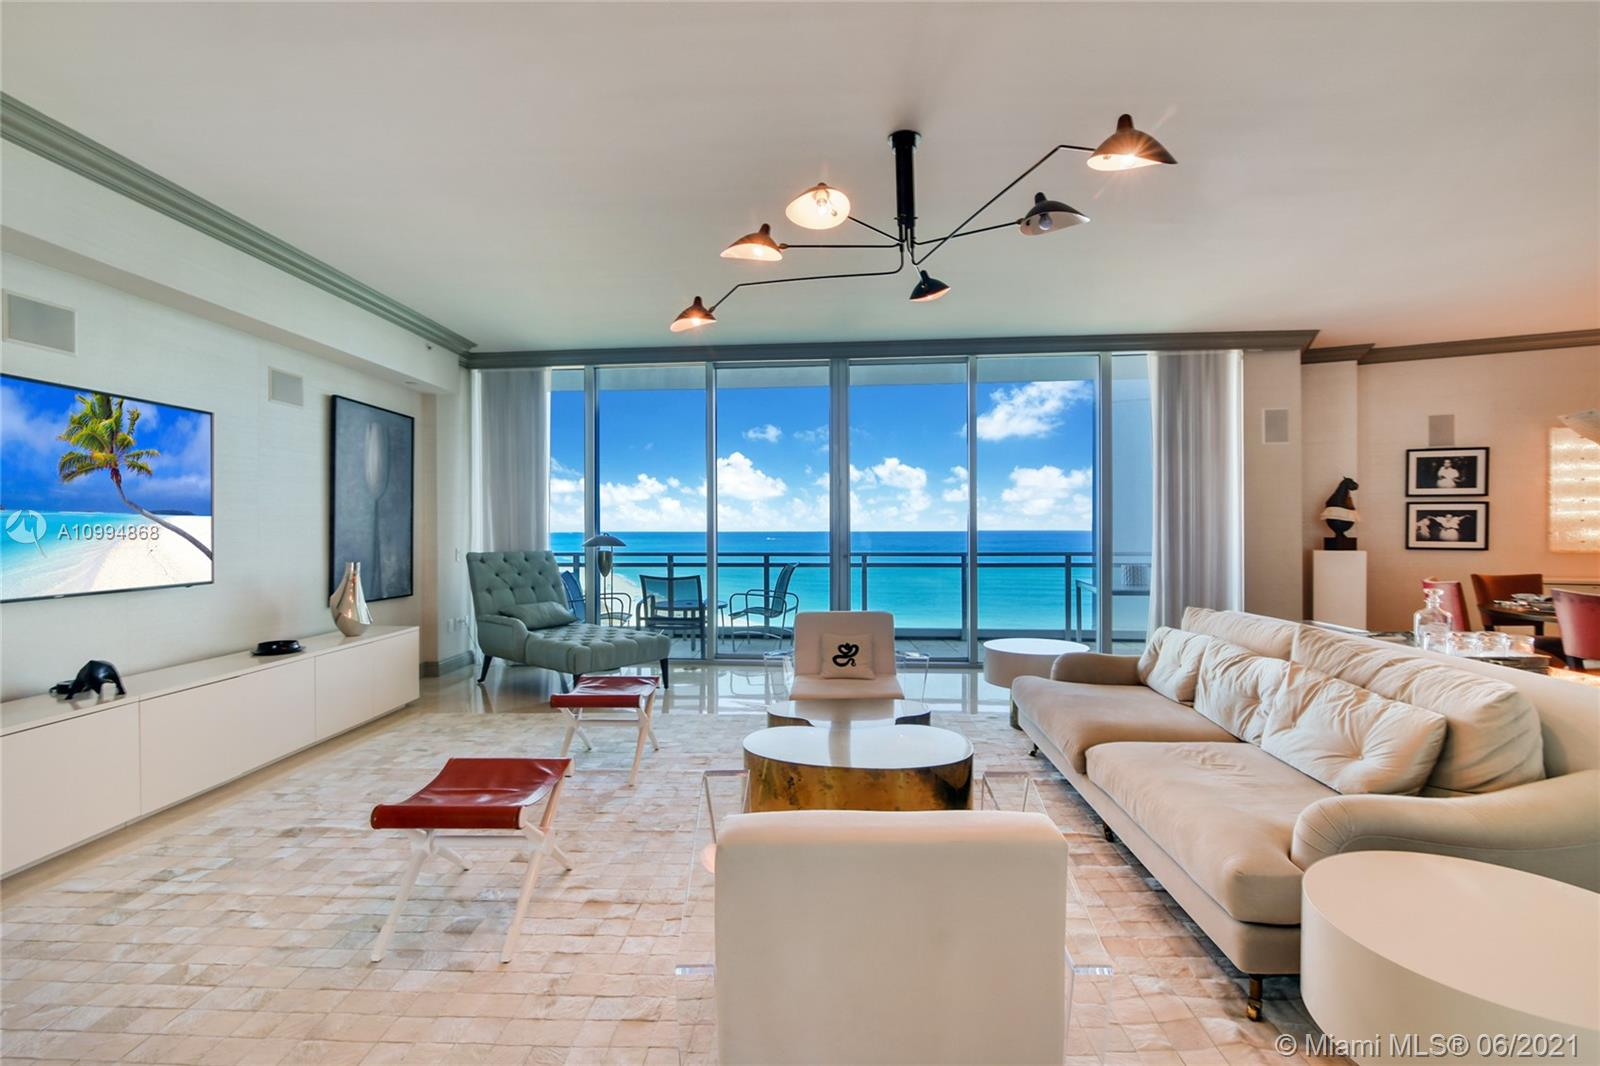 Price adjustment ! PANORAMIC DIRECT OCEAN, INTRACOASTAL & MIAMI SKYLINE VIEWS!  3 BEDROOMS /3.5 BATHS UNIT! THE MOST PRESTIGIUSE ONE BAL HARBOUR /RITZ CARLTON RESIDENCES WITH A PRIVATE FOYER ENTRY. 3 TERRACES WITH SUNRISE & SUNSETS VIEWS ,OPEN FLOOR PLAN FOR THE ENTERTAINMENT ,10 FEET CEILING ,MASTER SUITE W/ SITTING AREA,  WALKING HIS&HERS CLOSETS . GOURMET KITCHEN W/GAS STOVE ,WOLF APPLIANCES ,MIELE BUILT IN COFFEE MACHINE LAUNDRY ROOM,ASSIGNED PARKING,STORAGE ,5 STAR BUILDING AMENITIES FULL BEACH & POOL SERVICES GYM ,STEAM ROOM THEATER SOCIAL ROOM RESIDENTIAL CONCIERGE SERVICES,24 HOURS SECURITY VALET. ACCESS TO THE WORLD-CLASS RITZ CARLTON RESORT AMENITIES, FINE DINING RESTAURANT & SPA.